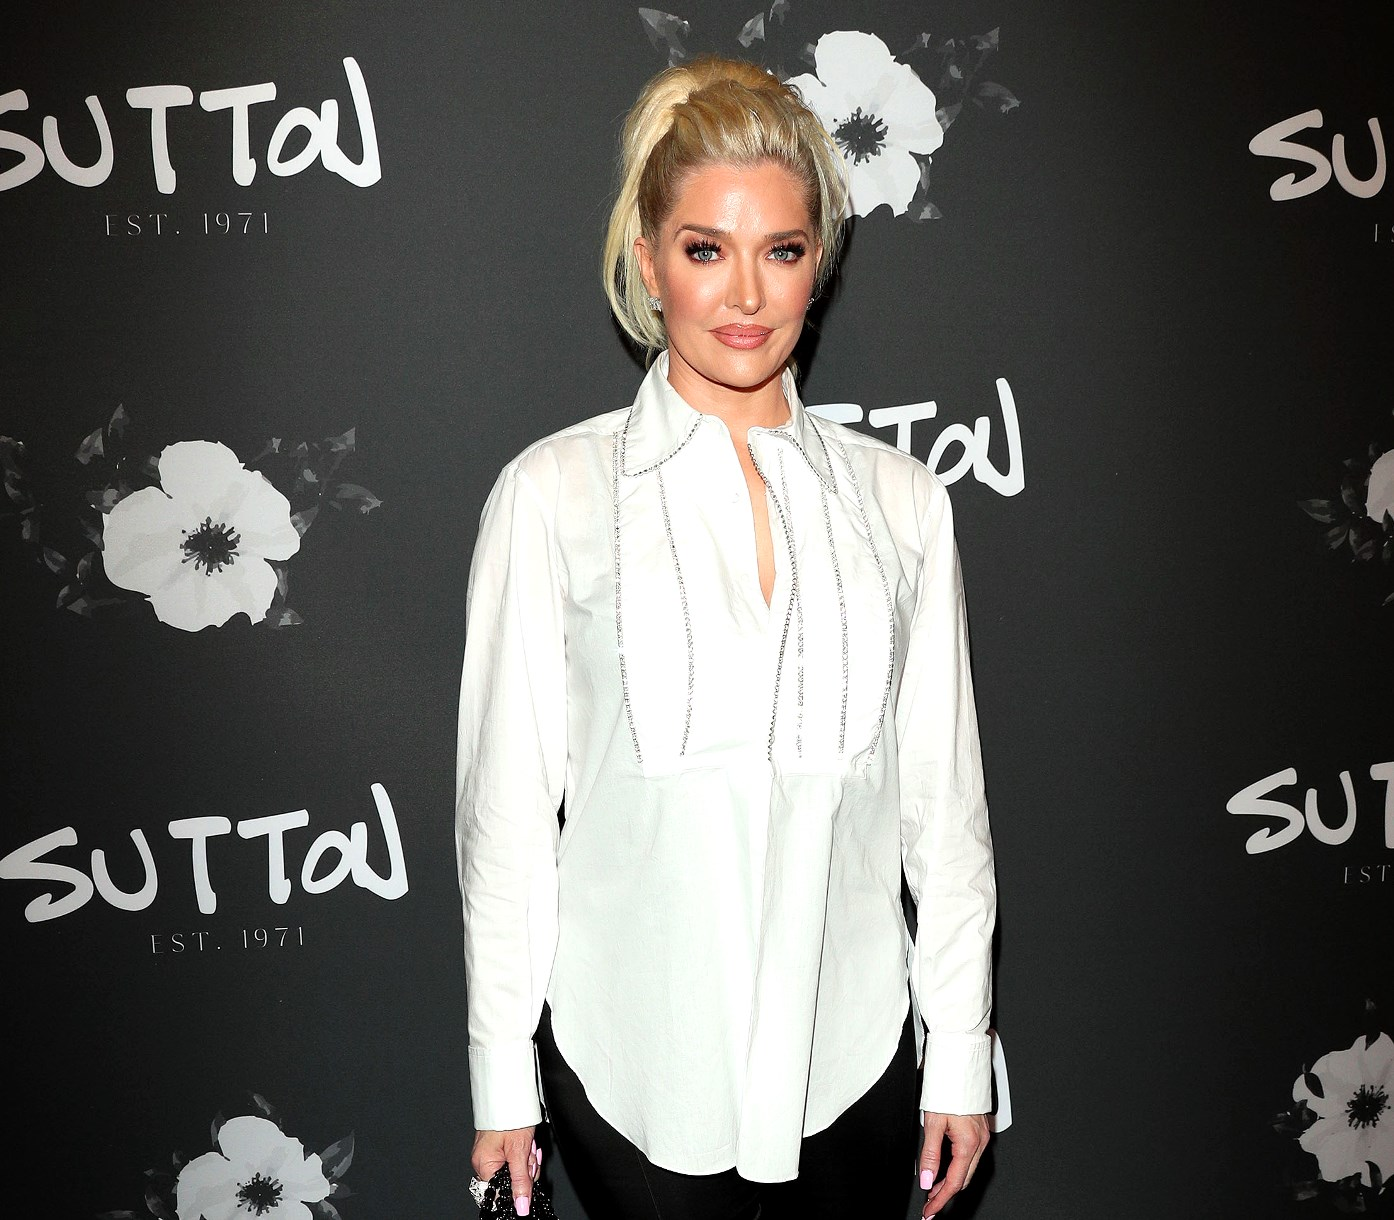 """RHOBH's Erika Jayne Refuses to """"Voluntarily"""" Return the $25 Million She is Accused of Keeping From Victims of Thomas Girardi's Fraud, Ditches Glam for Salon Visit"""